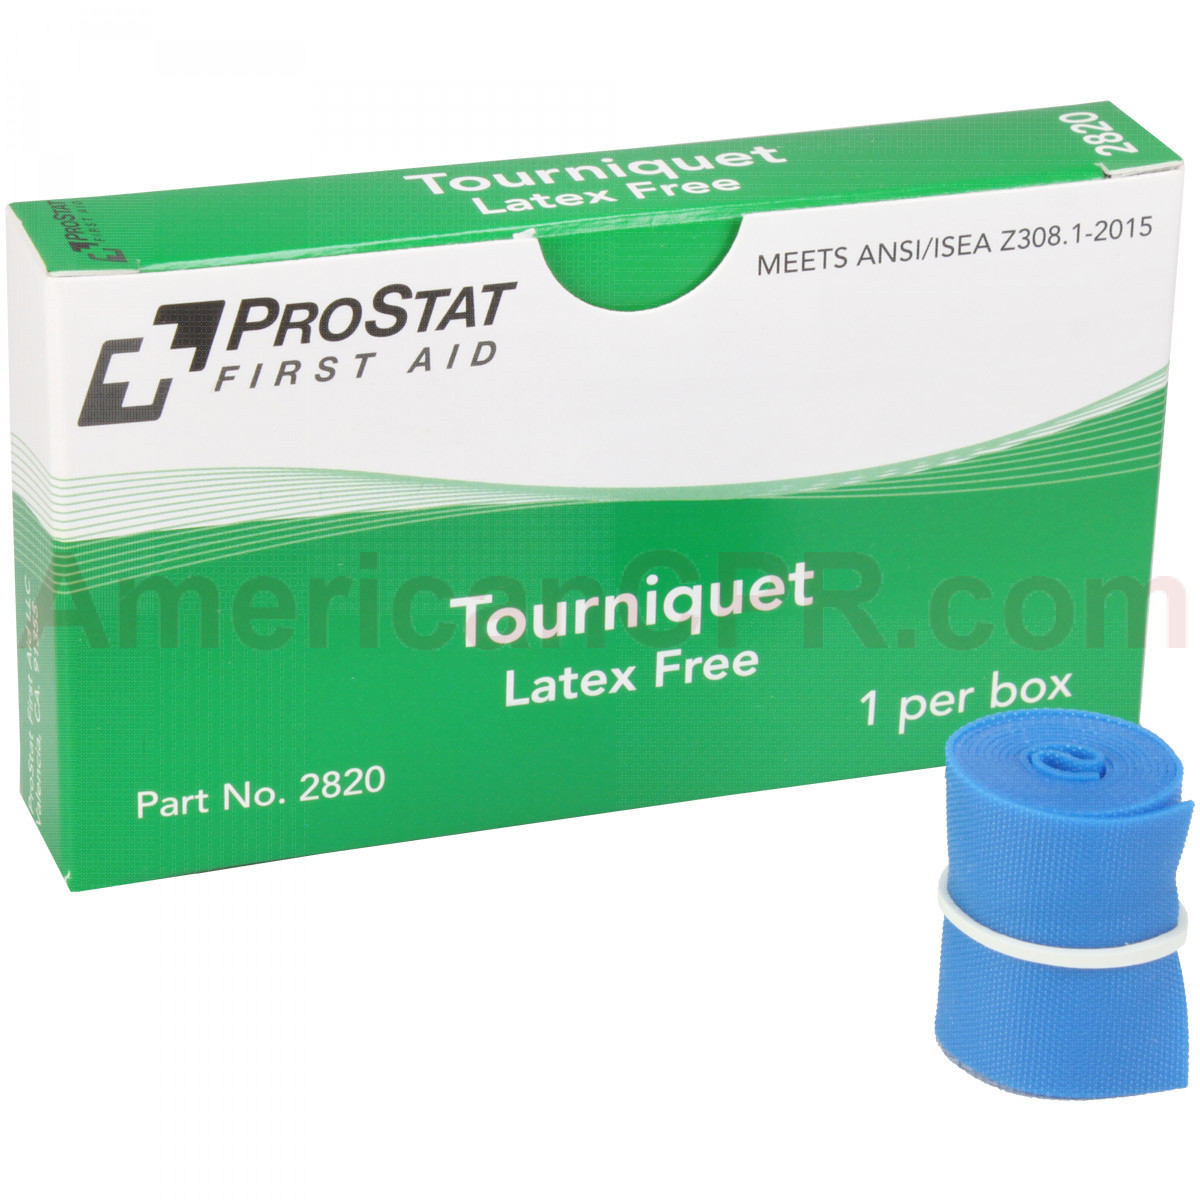 "Tourniquet (Latex free) 1"" x 18"", 1 per box, Prostat First Aid"